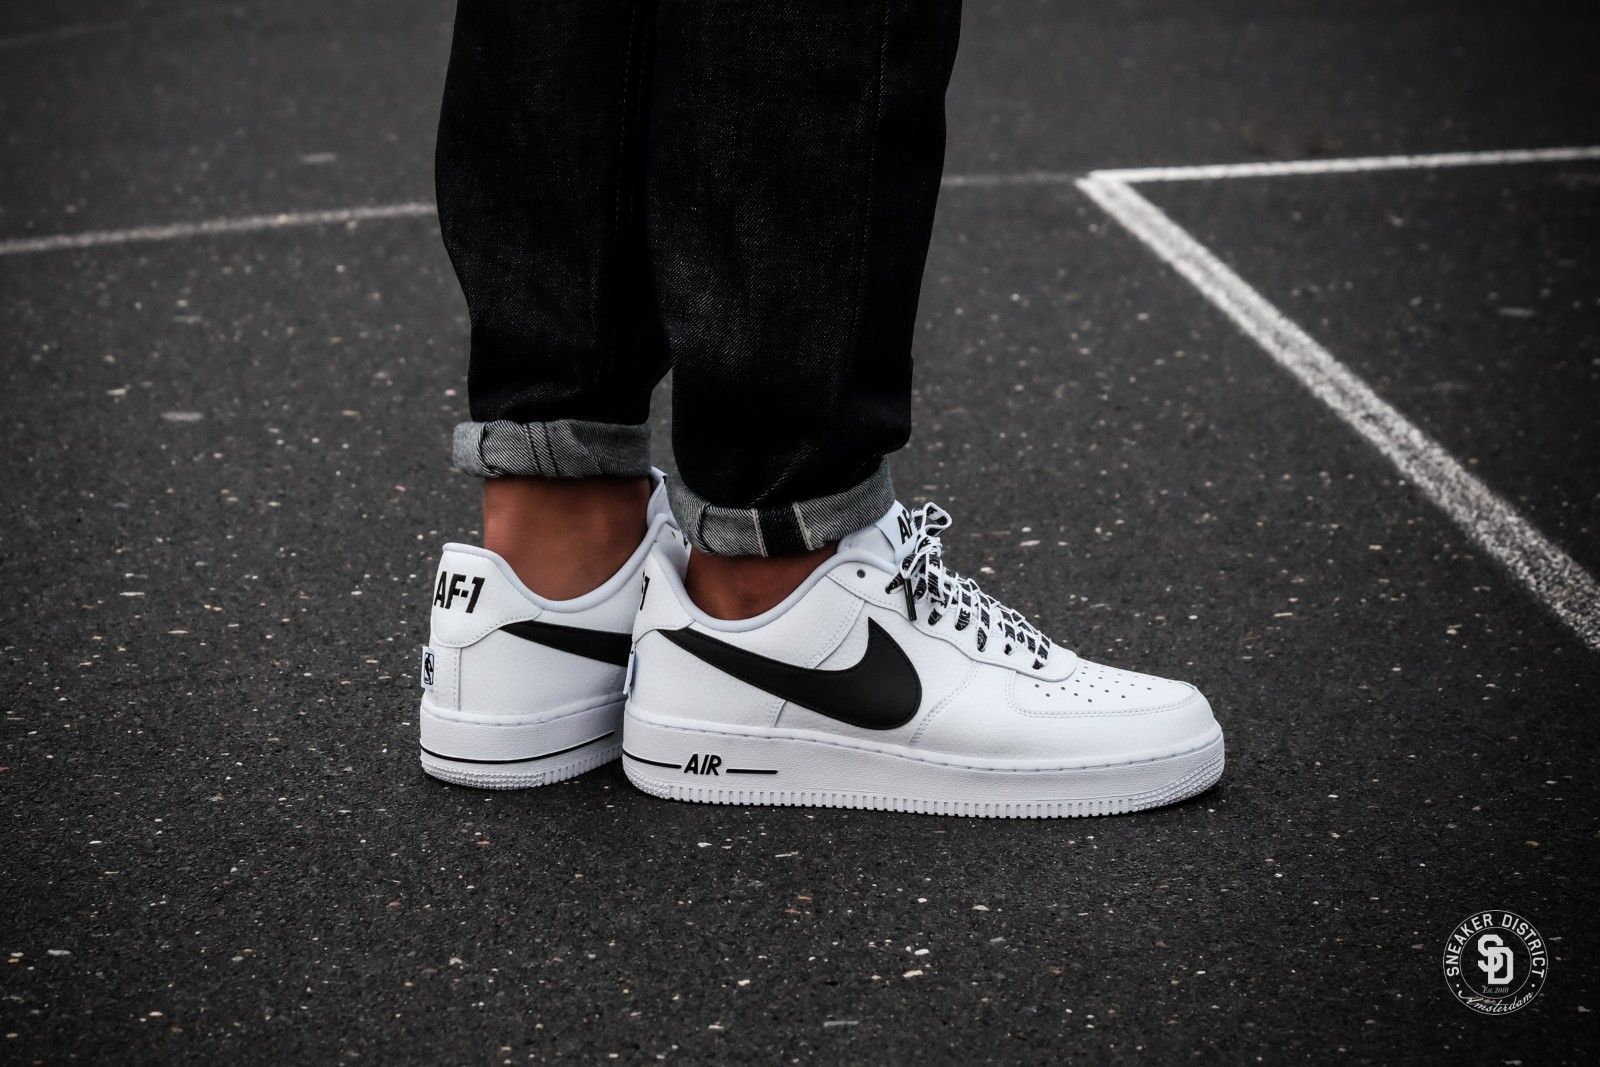 nike air force 1 '07 'nba' homme